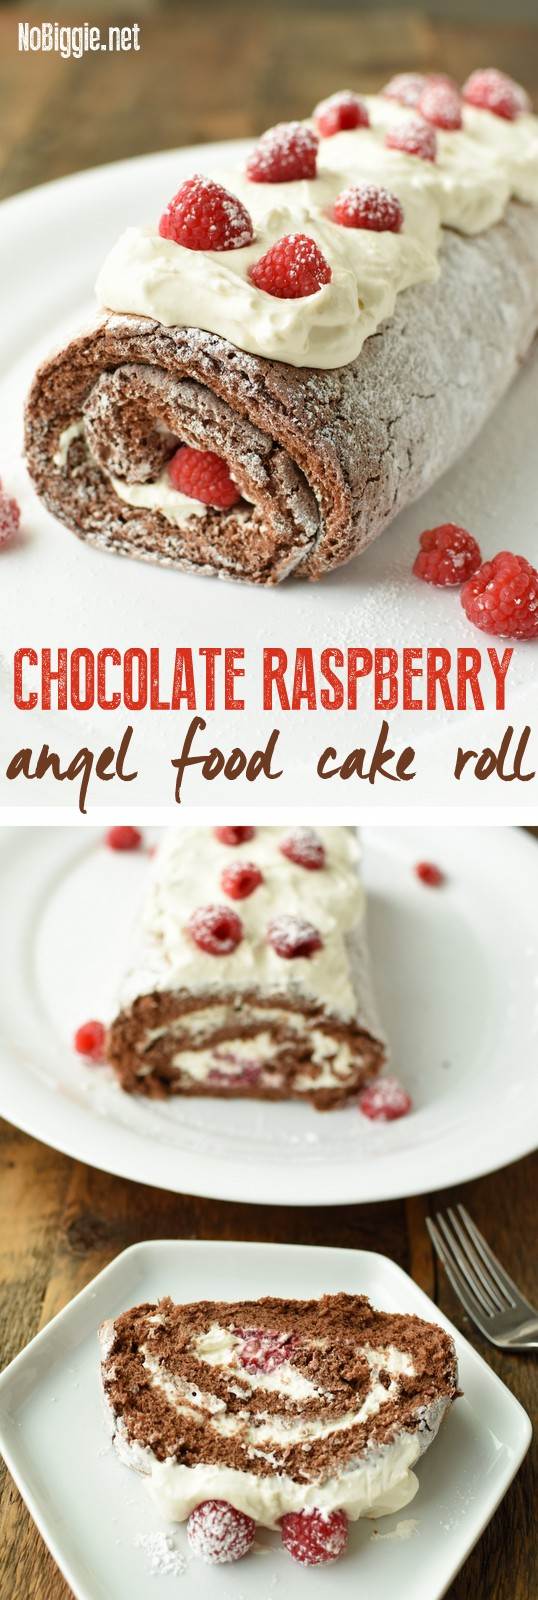 Chocolate Raspberry Angel Food Cake Roll | NoBiggie.net